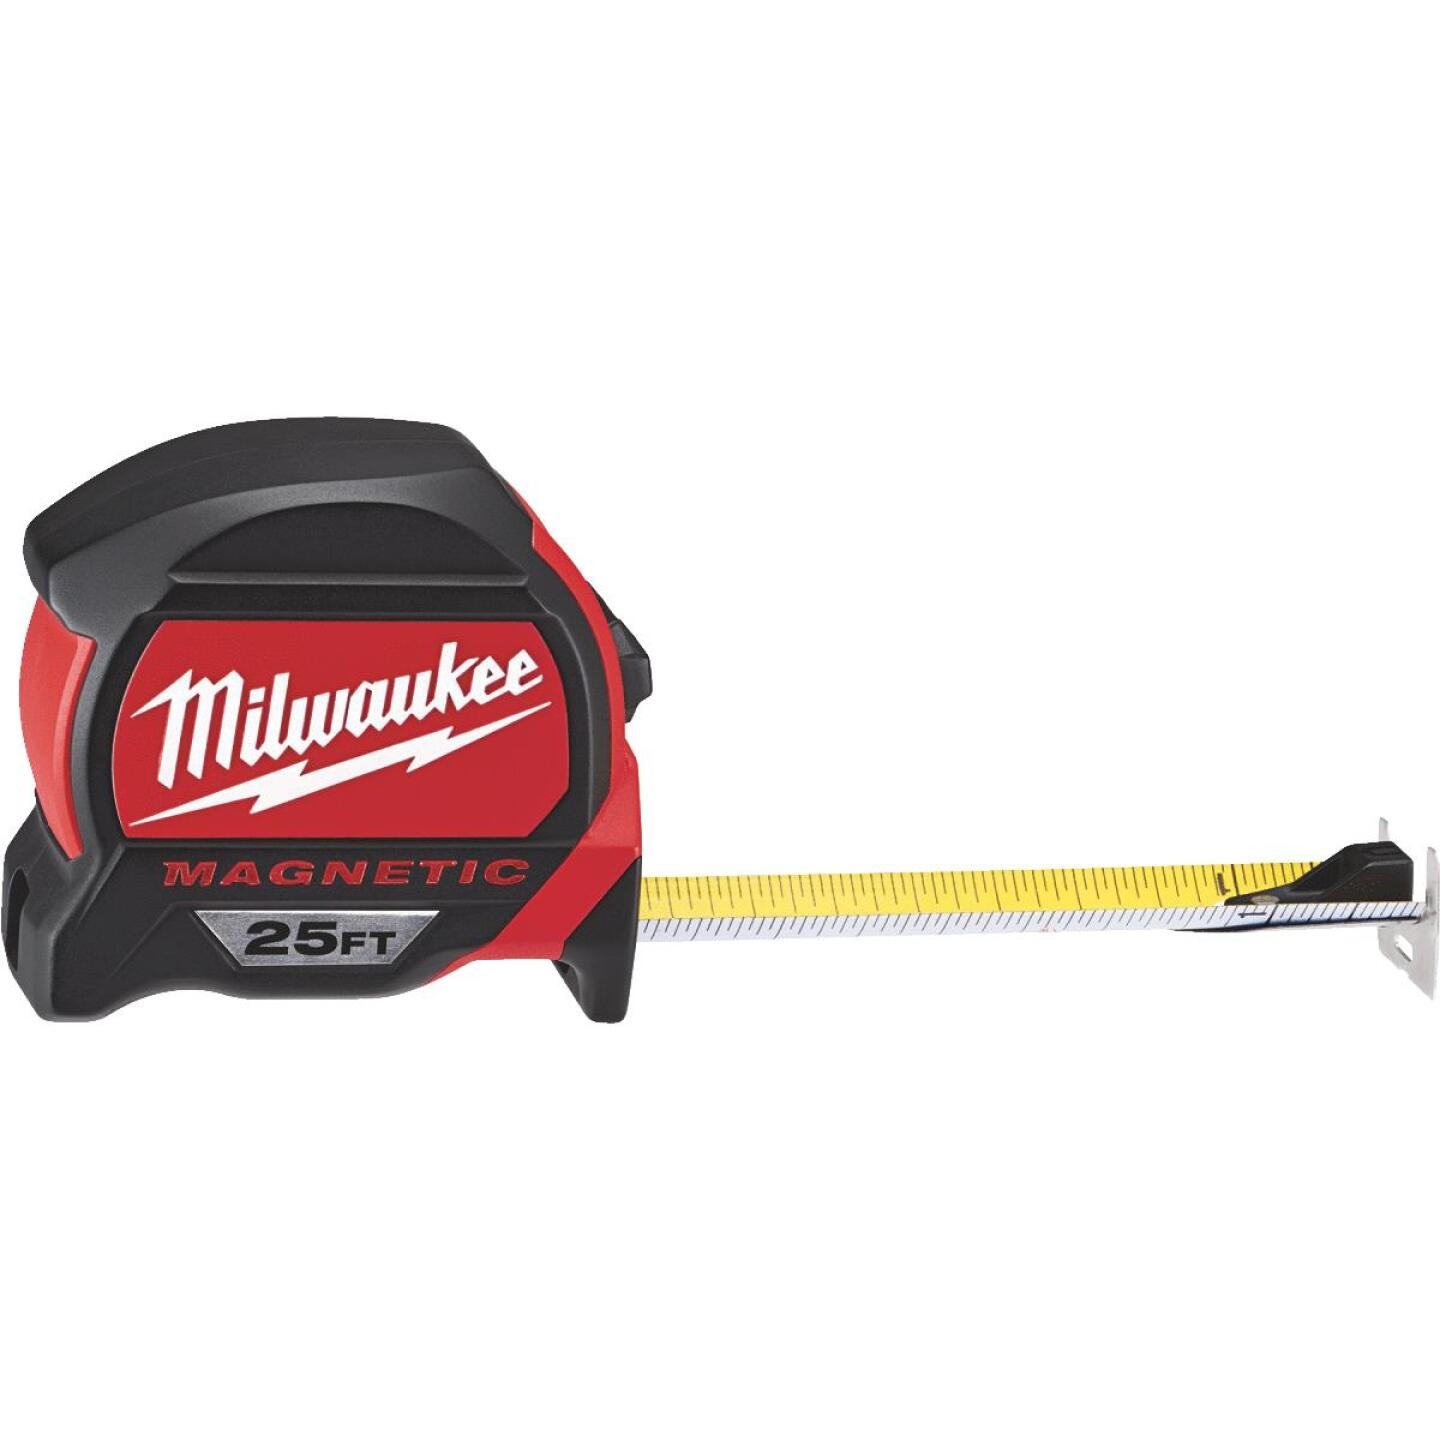 Milwaukee 25 Ft. Magnetic Tape Measure with Blueprint Scale Image 1